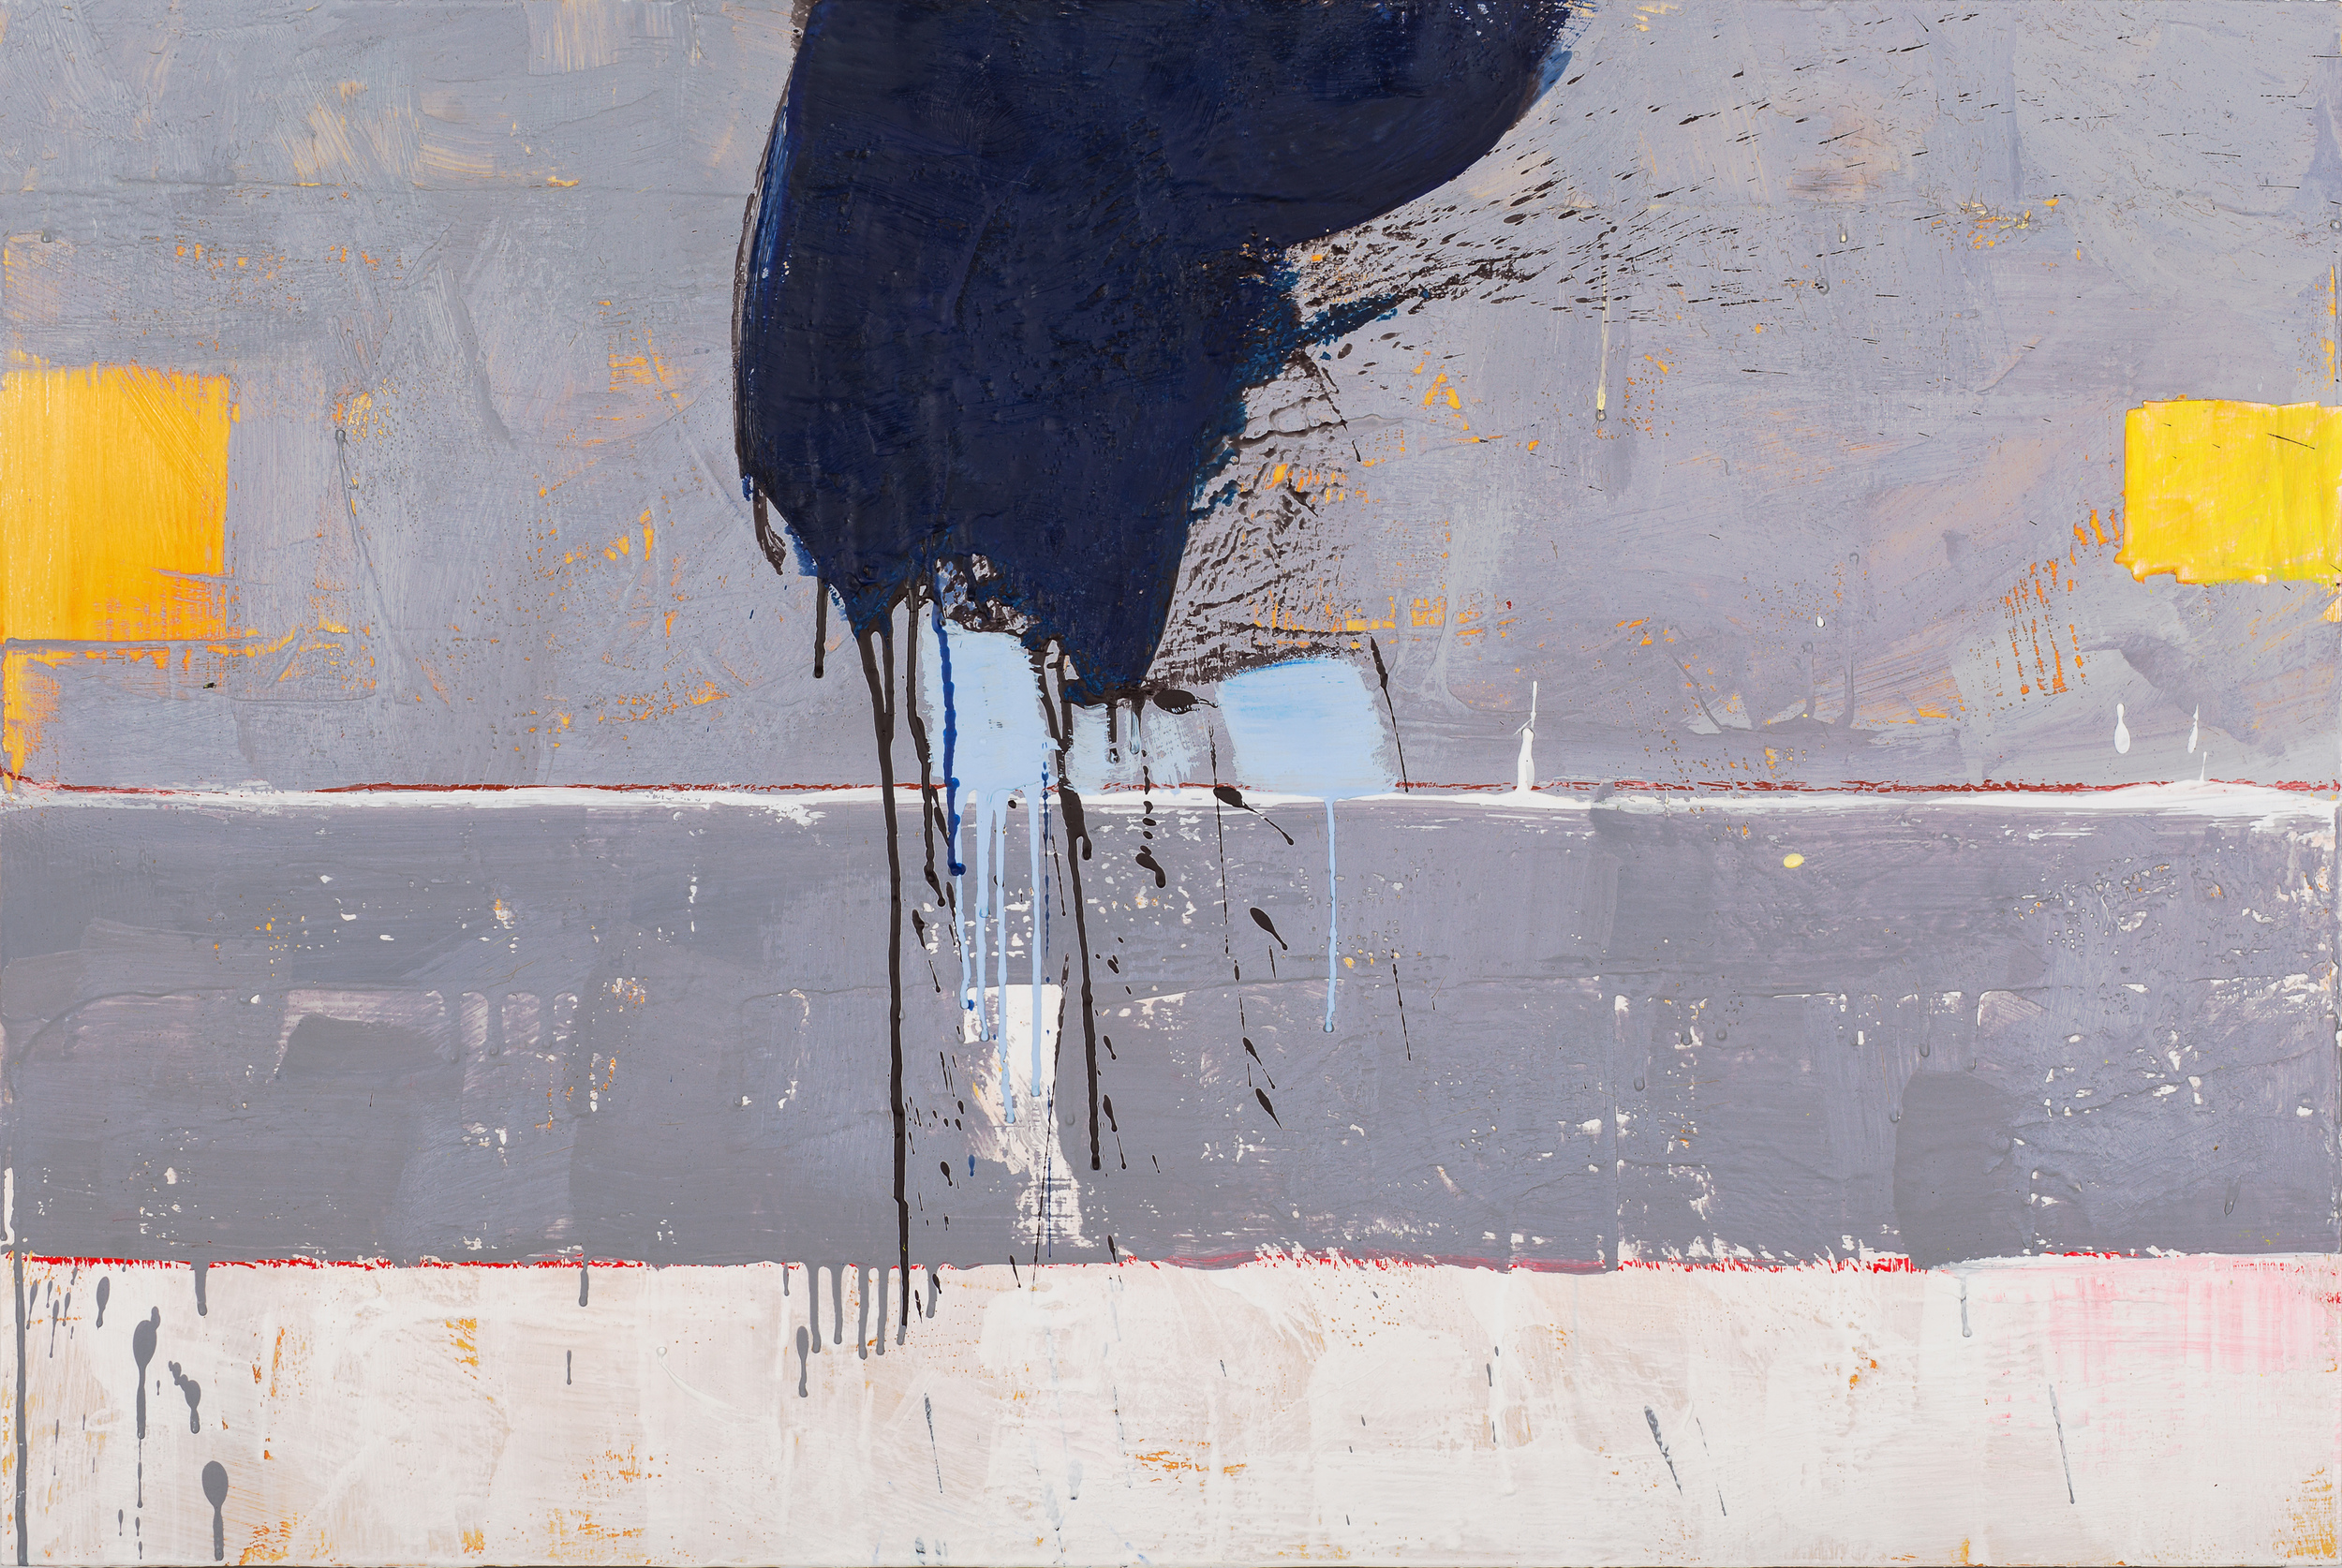 KW-072, Keith Wood, This Time 12, 2015, Encaustic on Panel, 36 x 24, $1,650